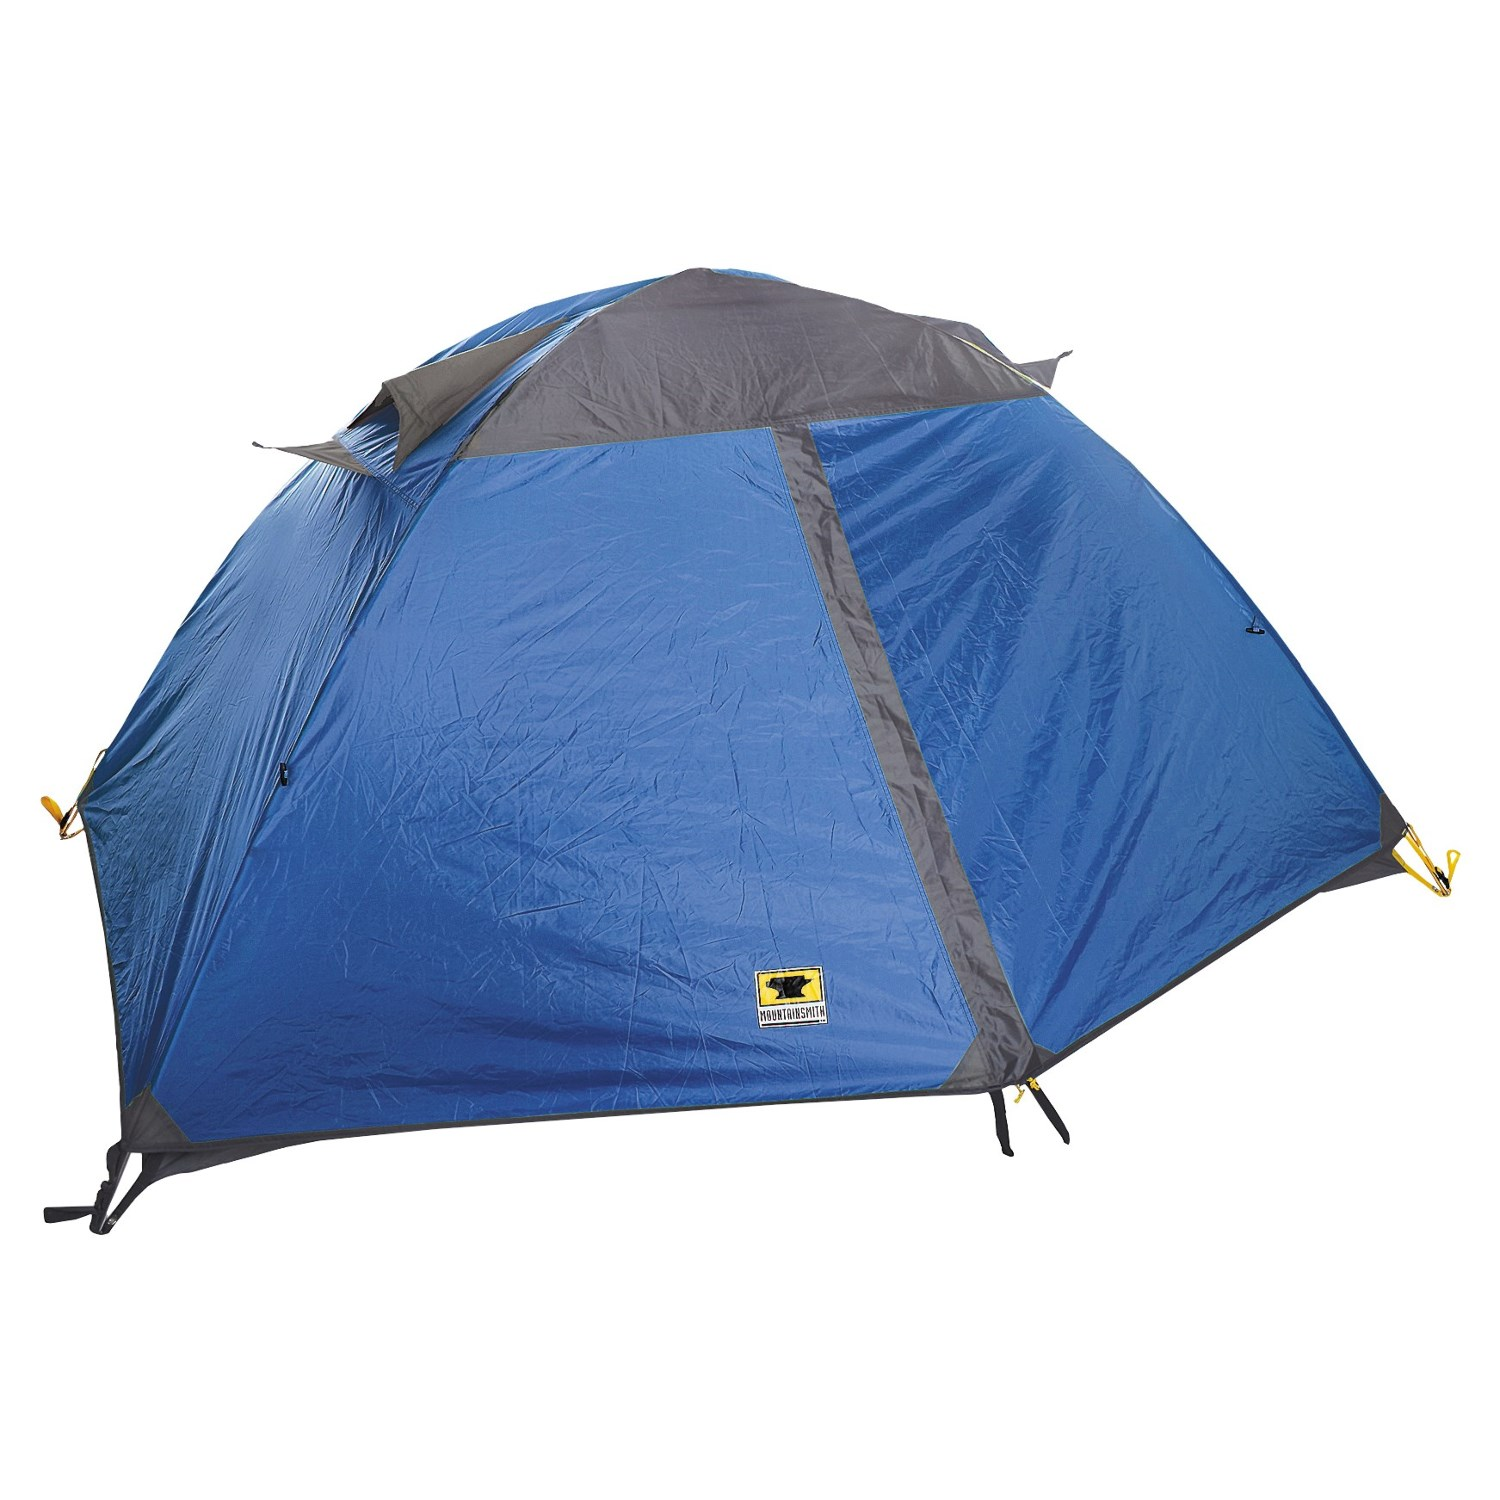 Mountainsmith Celestial Tent - 2-Person 3-Season  sc 1 st  Sierra Trading Post & Mountainsmith Celestial Tent - 2-Person 3-Season - Save 33%